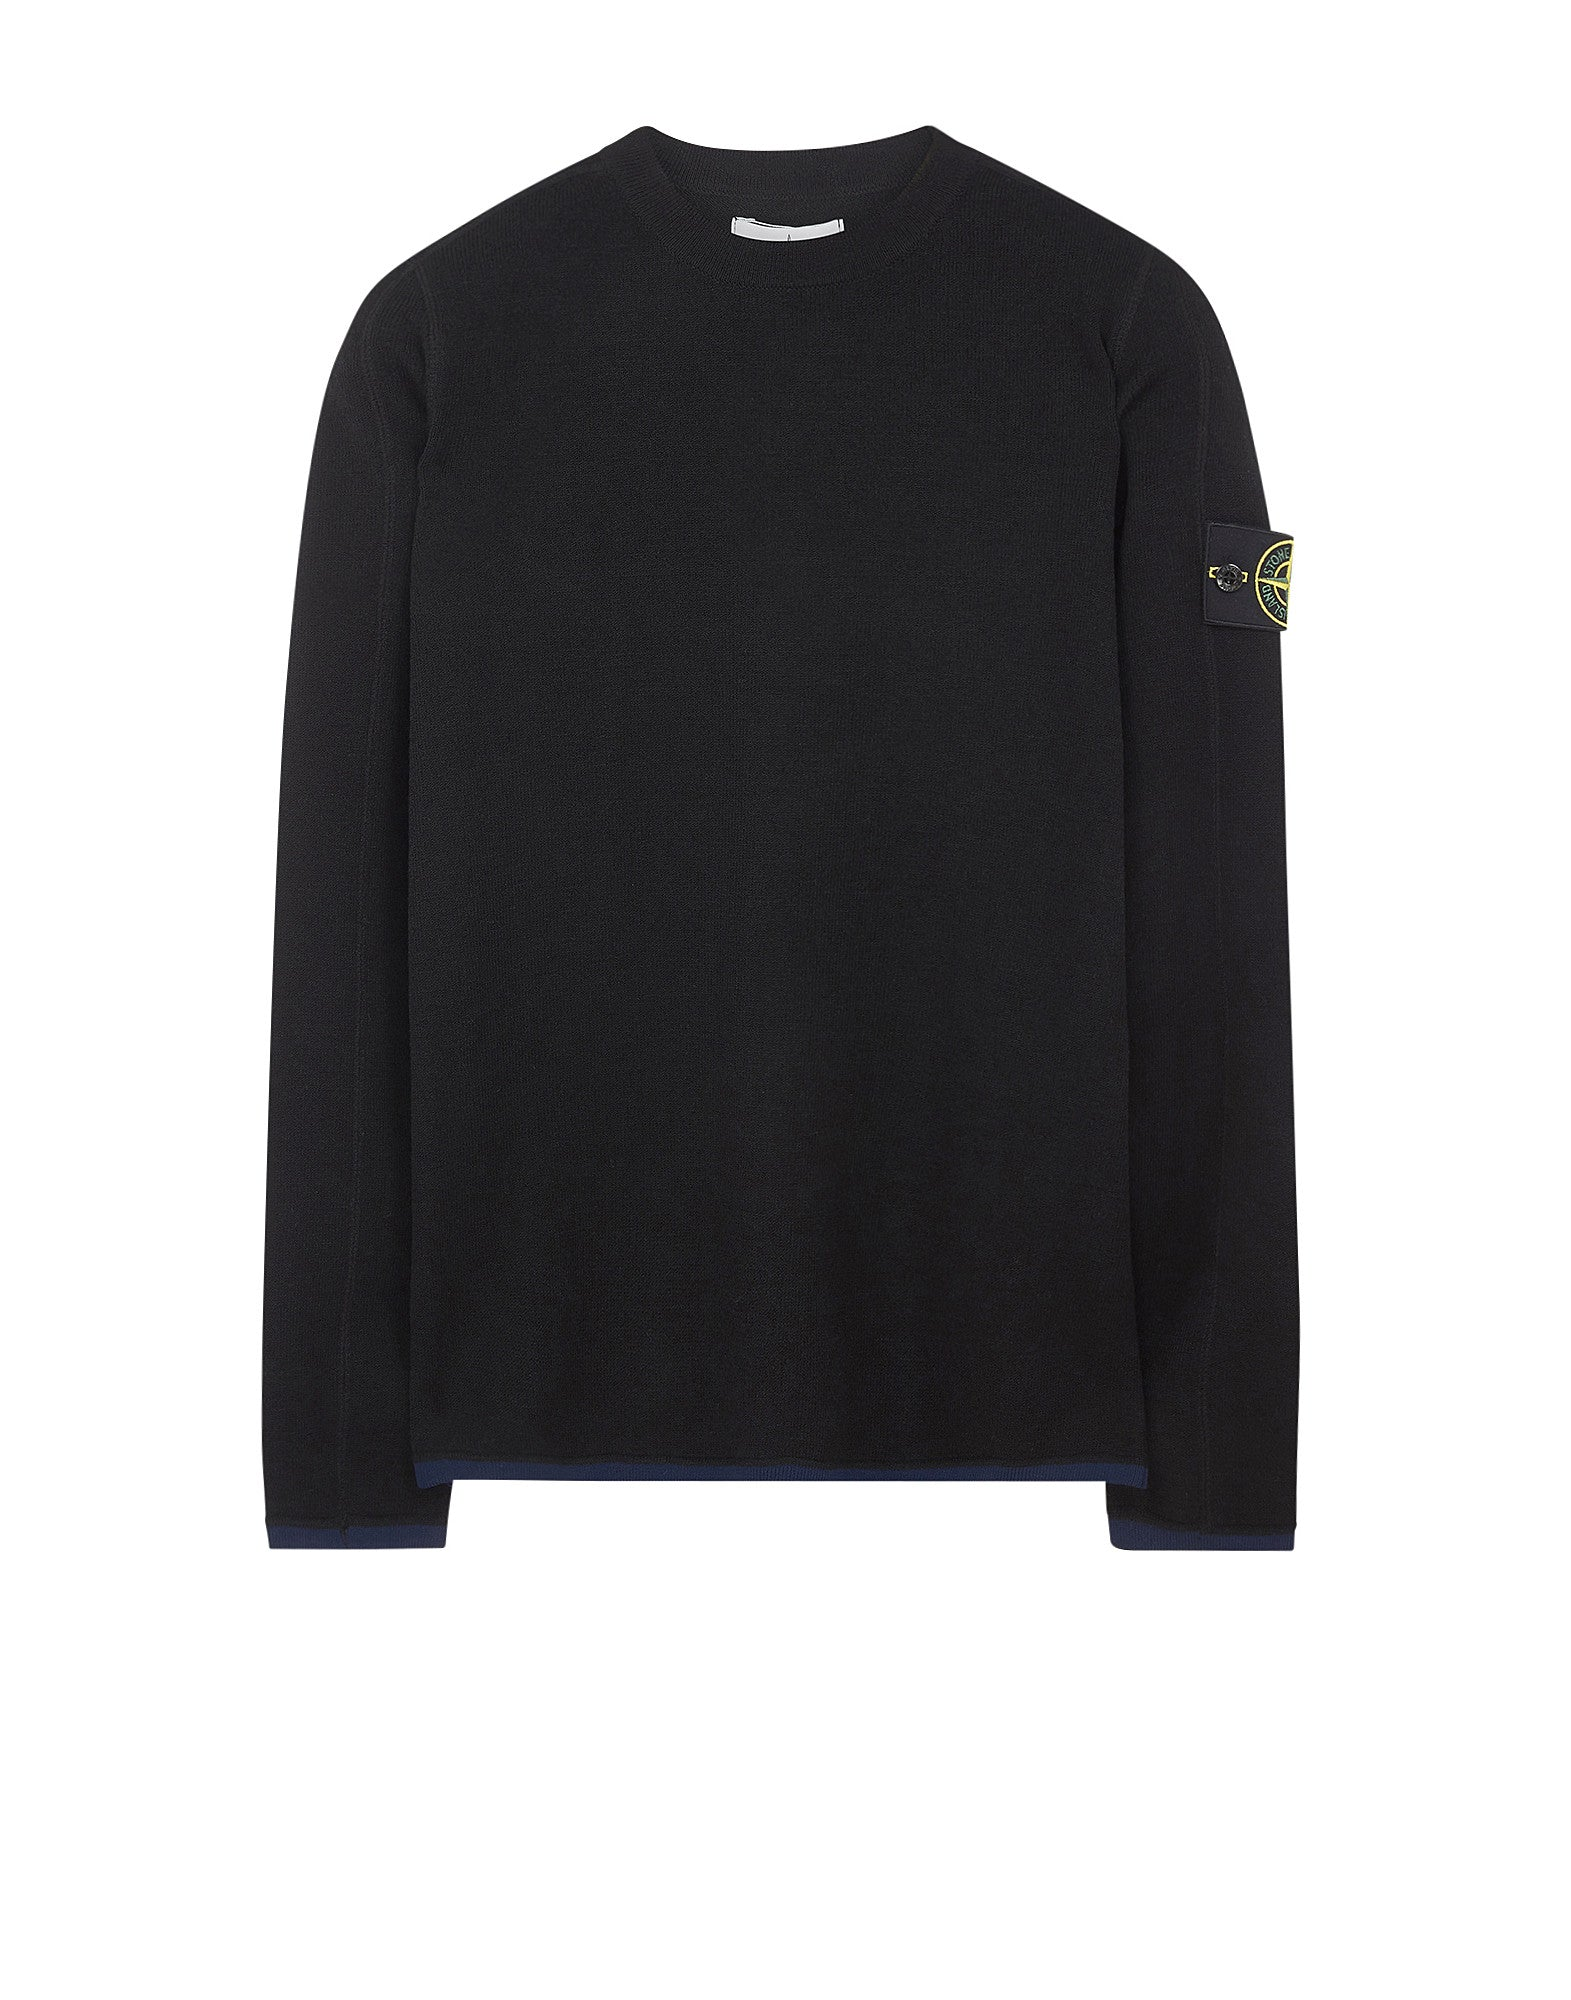 542A1 Crewneck Wool Knit in Black